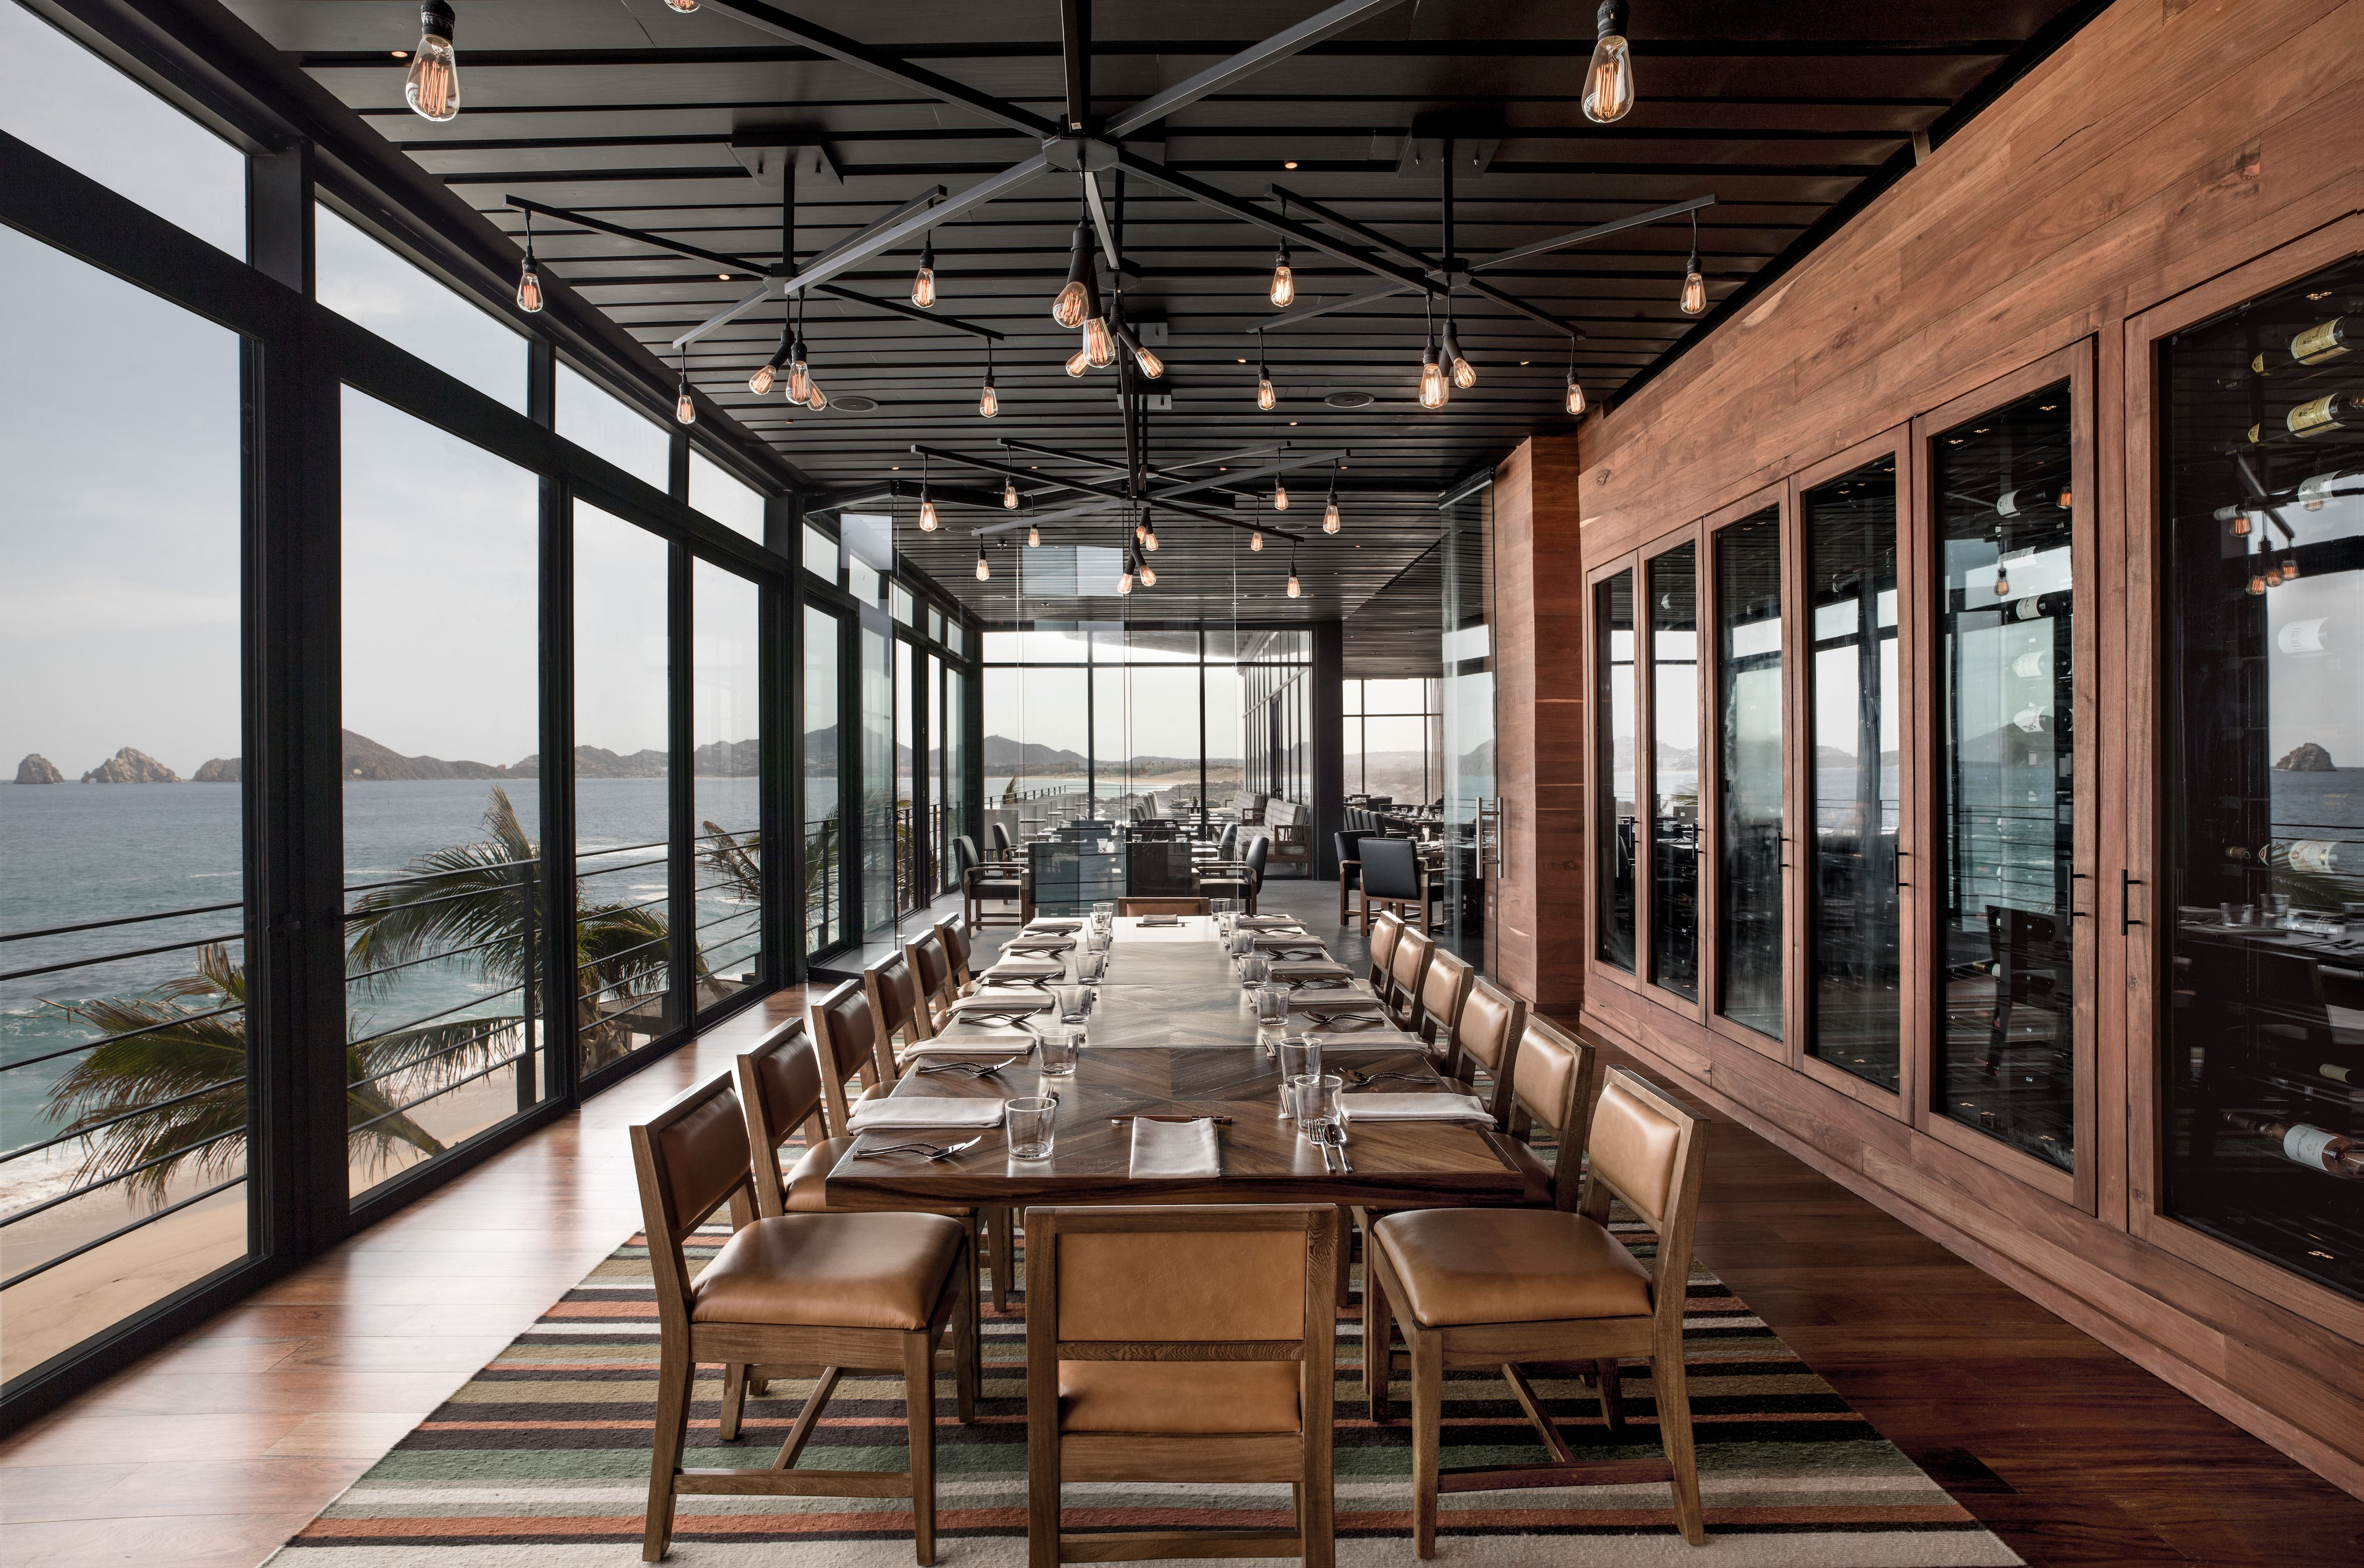 Manta's private dining room at The Cape